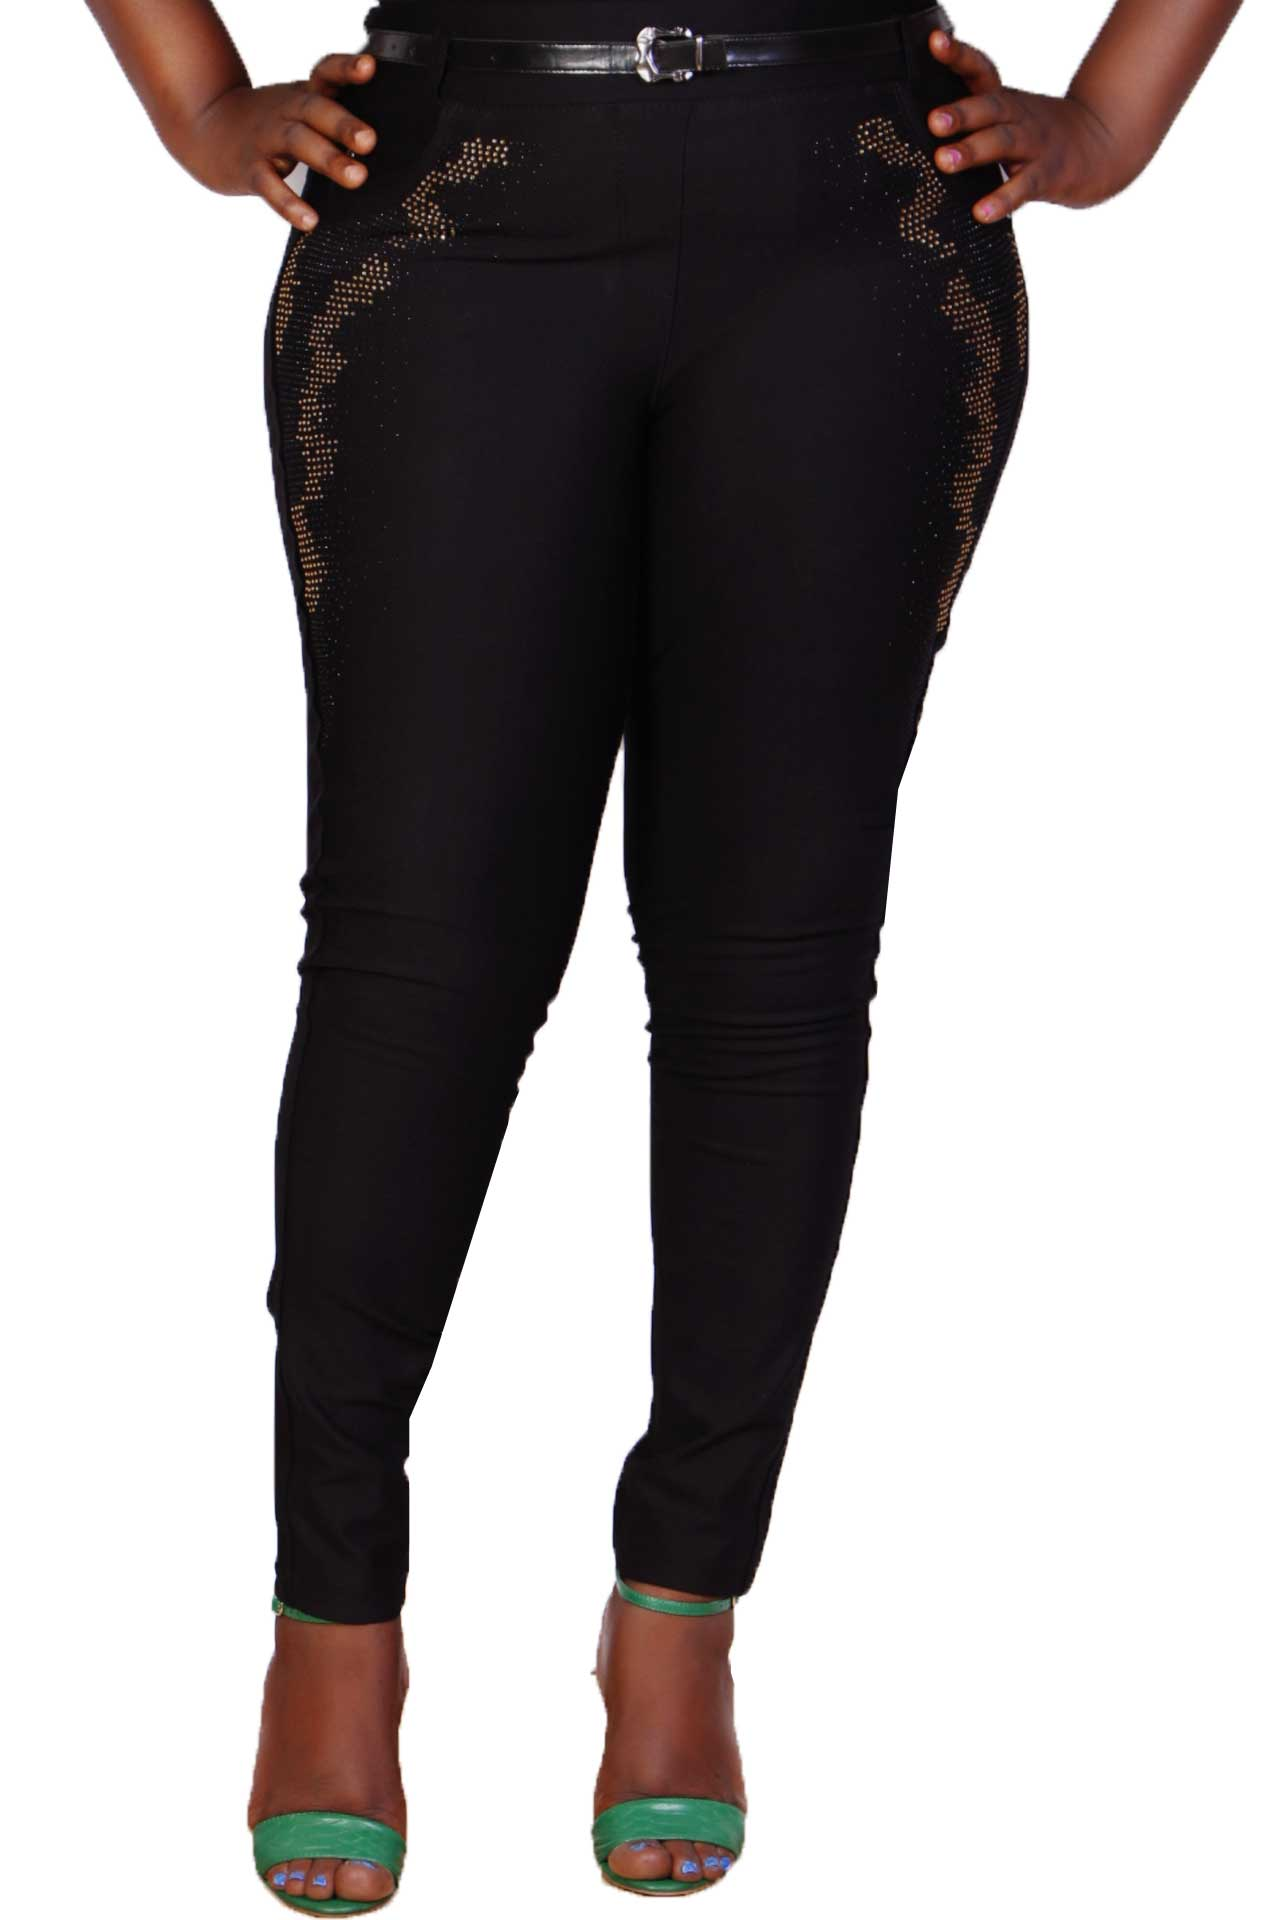 Talia Black Diamante Embellished Slim Fitted Trouser